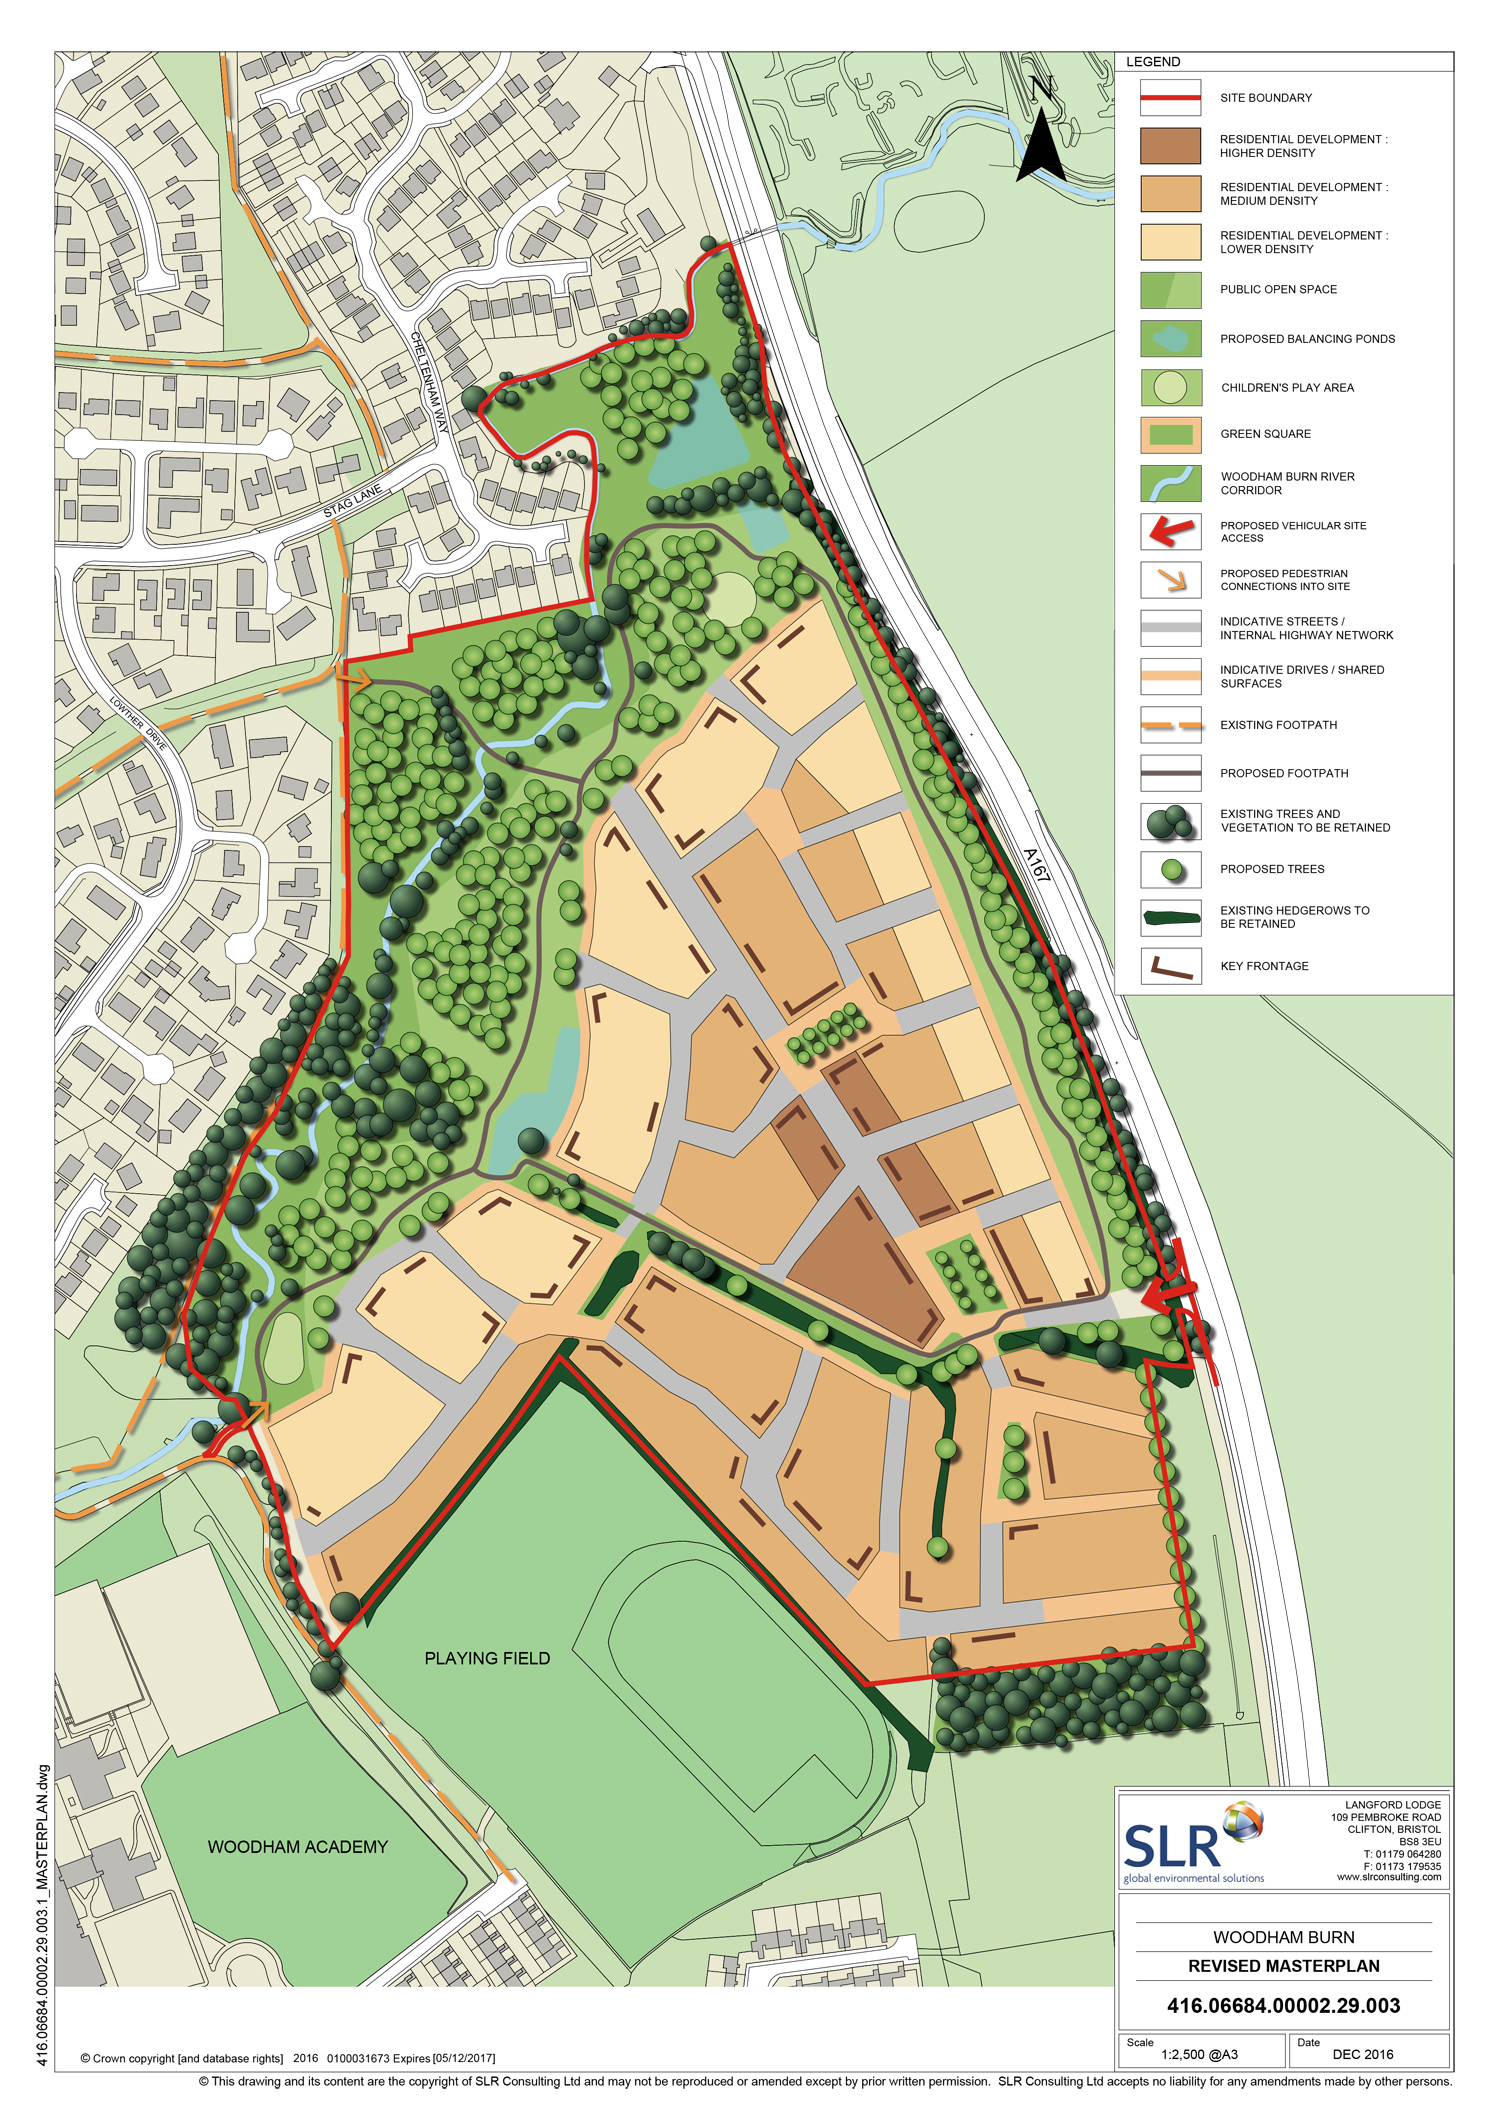 Appeal to Build 430 Houses at Woodham